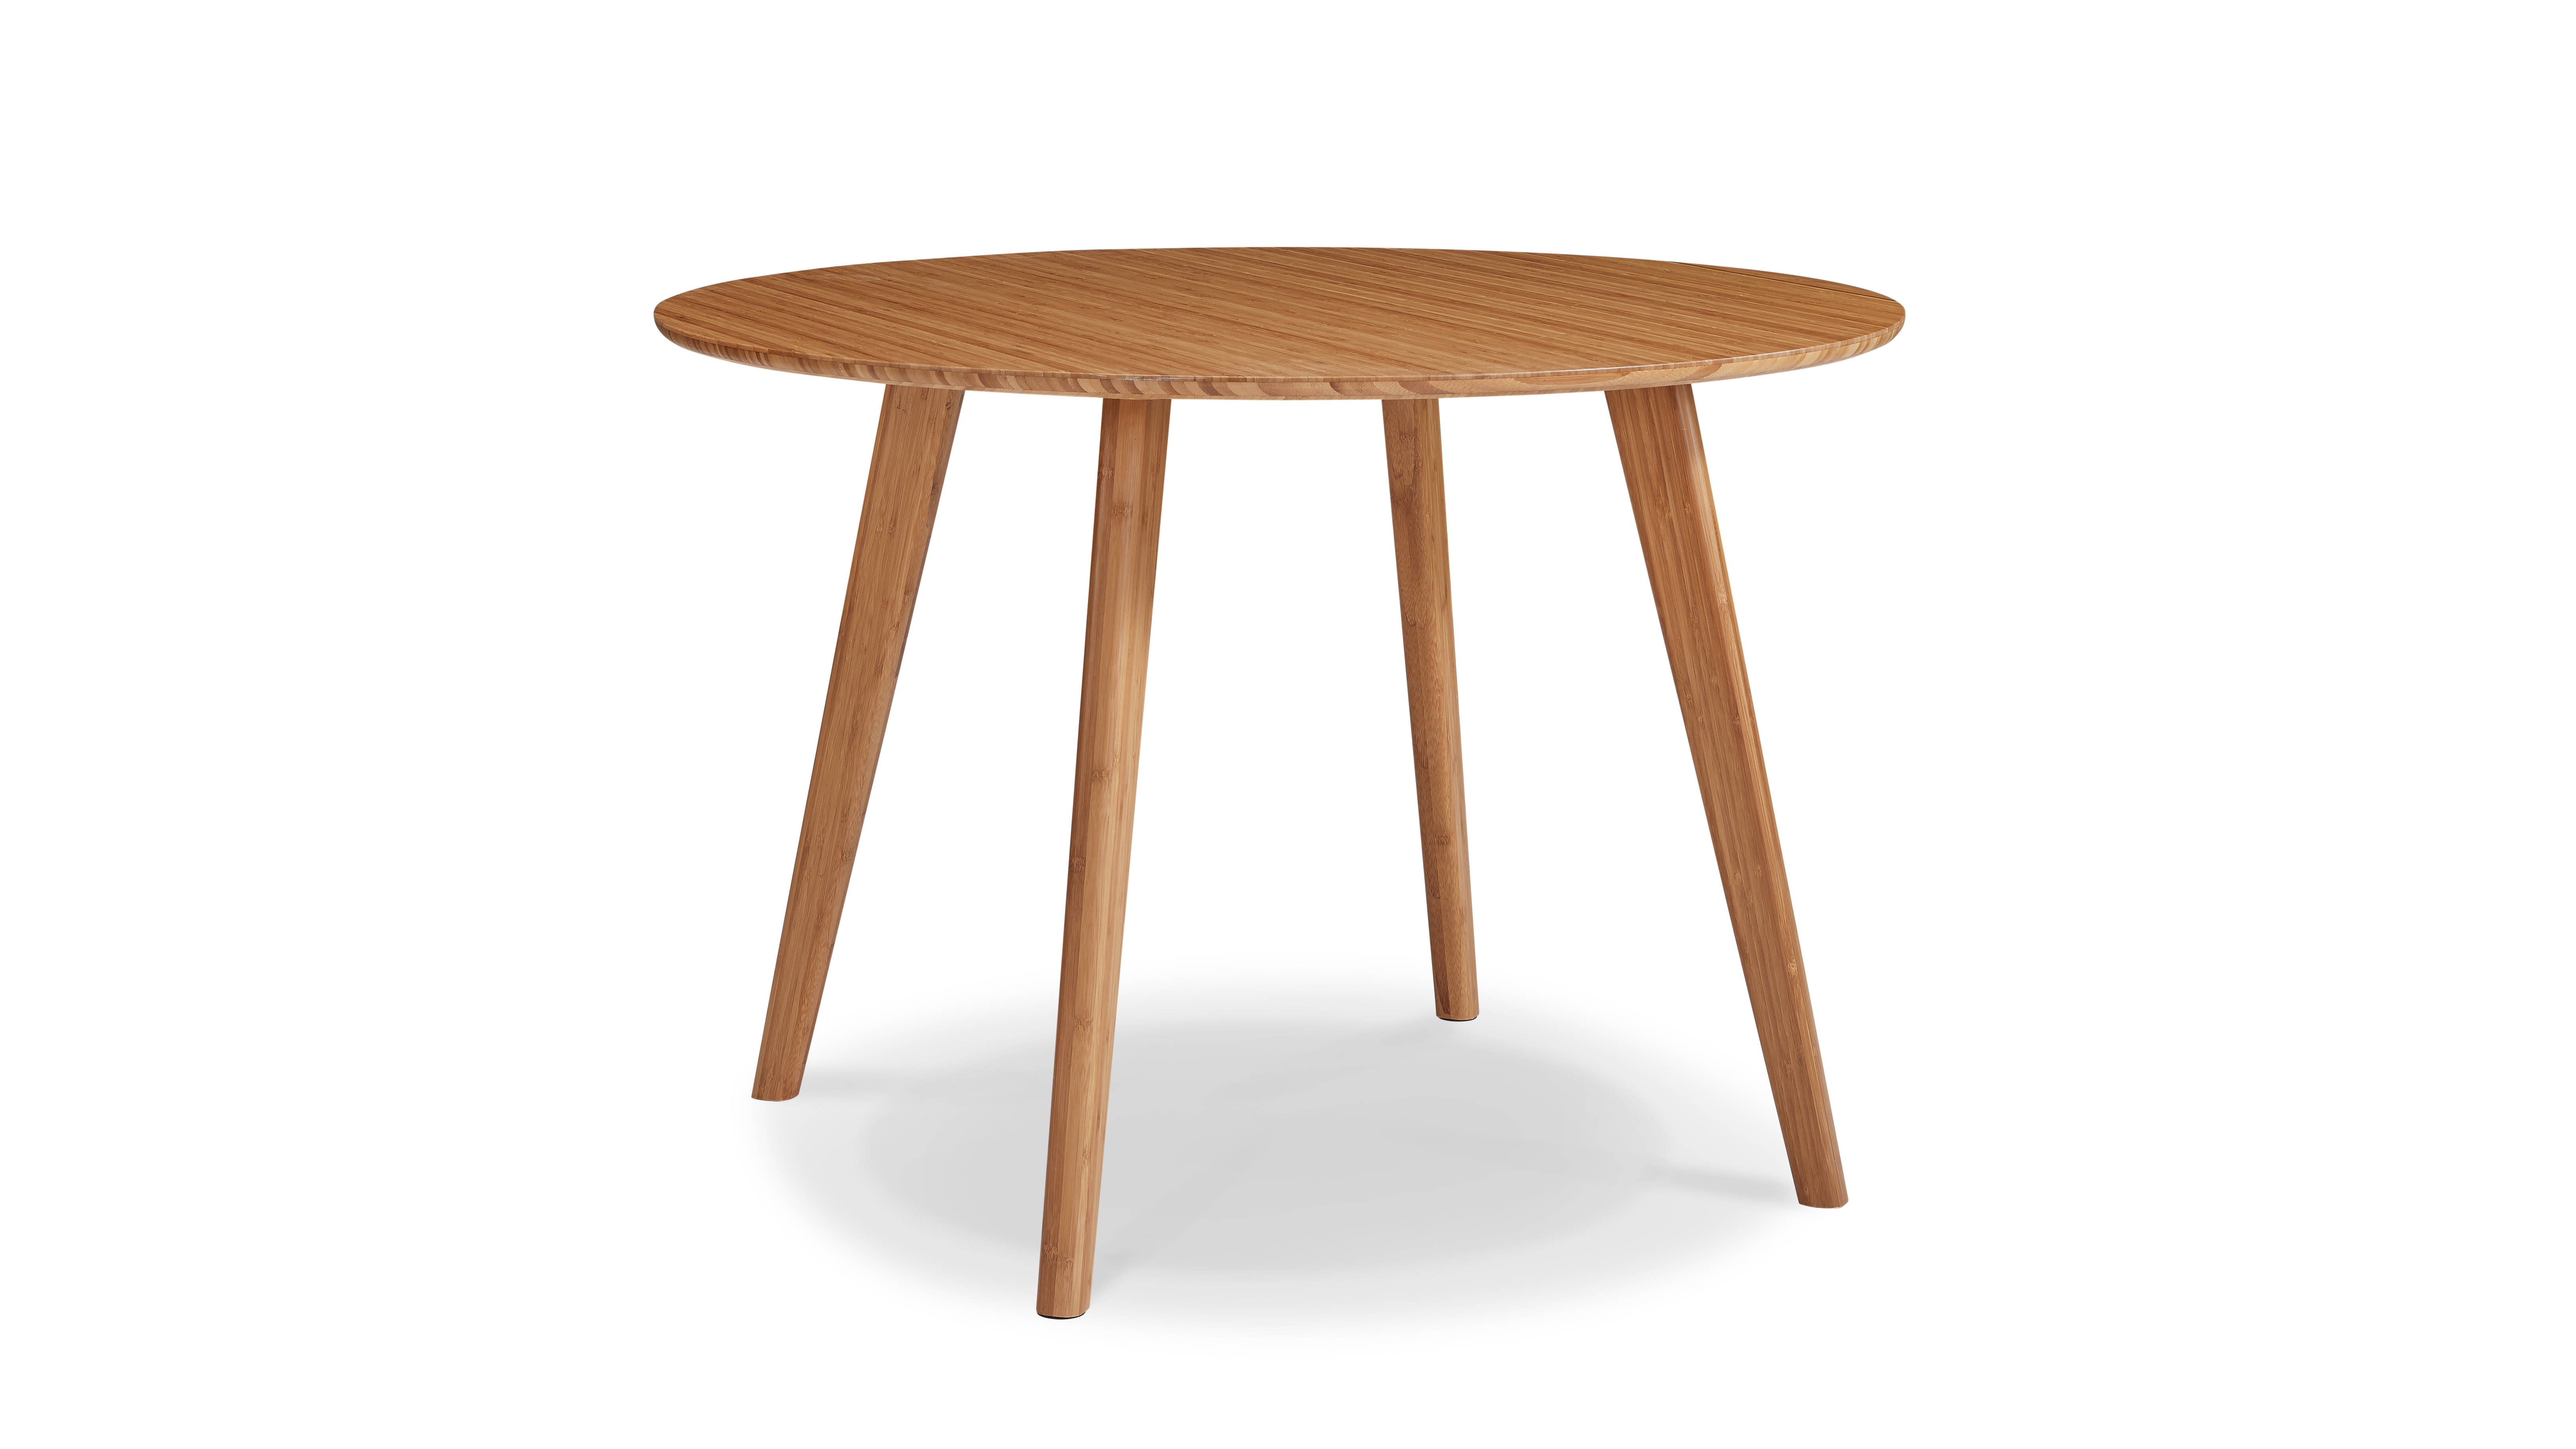 42 Inch Round Dining Table Click To Enlarge